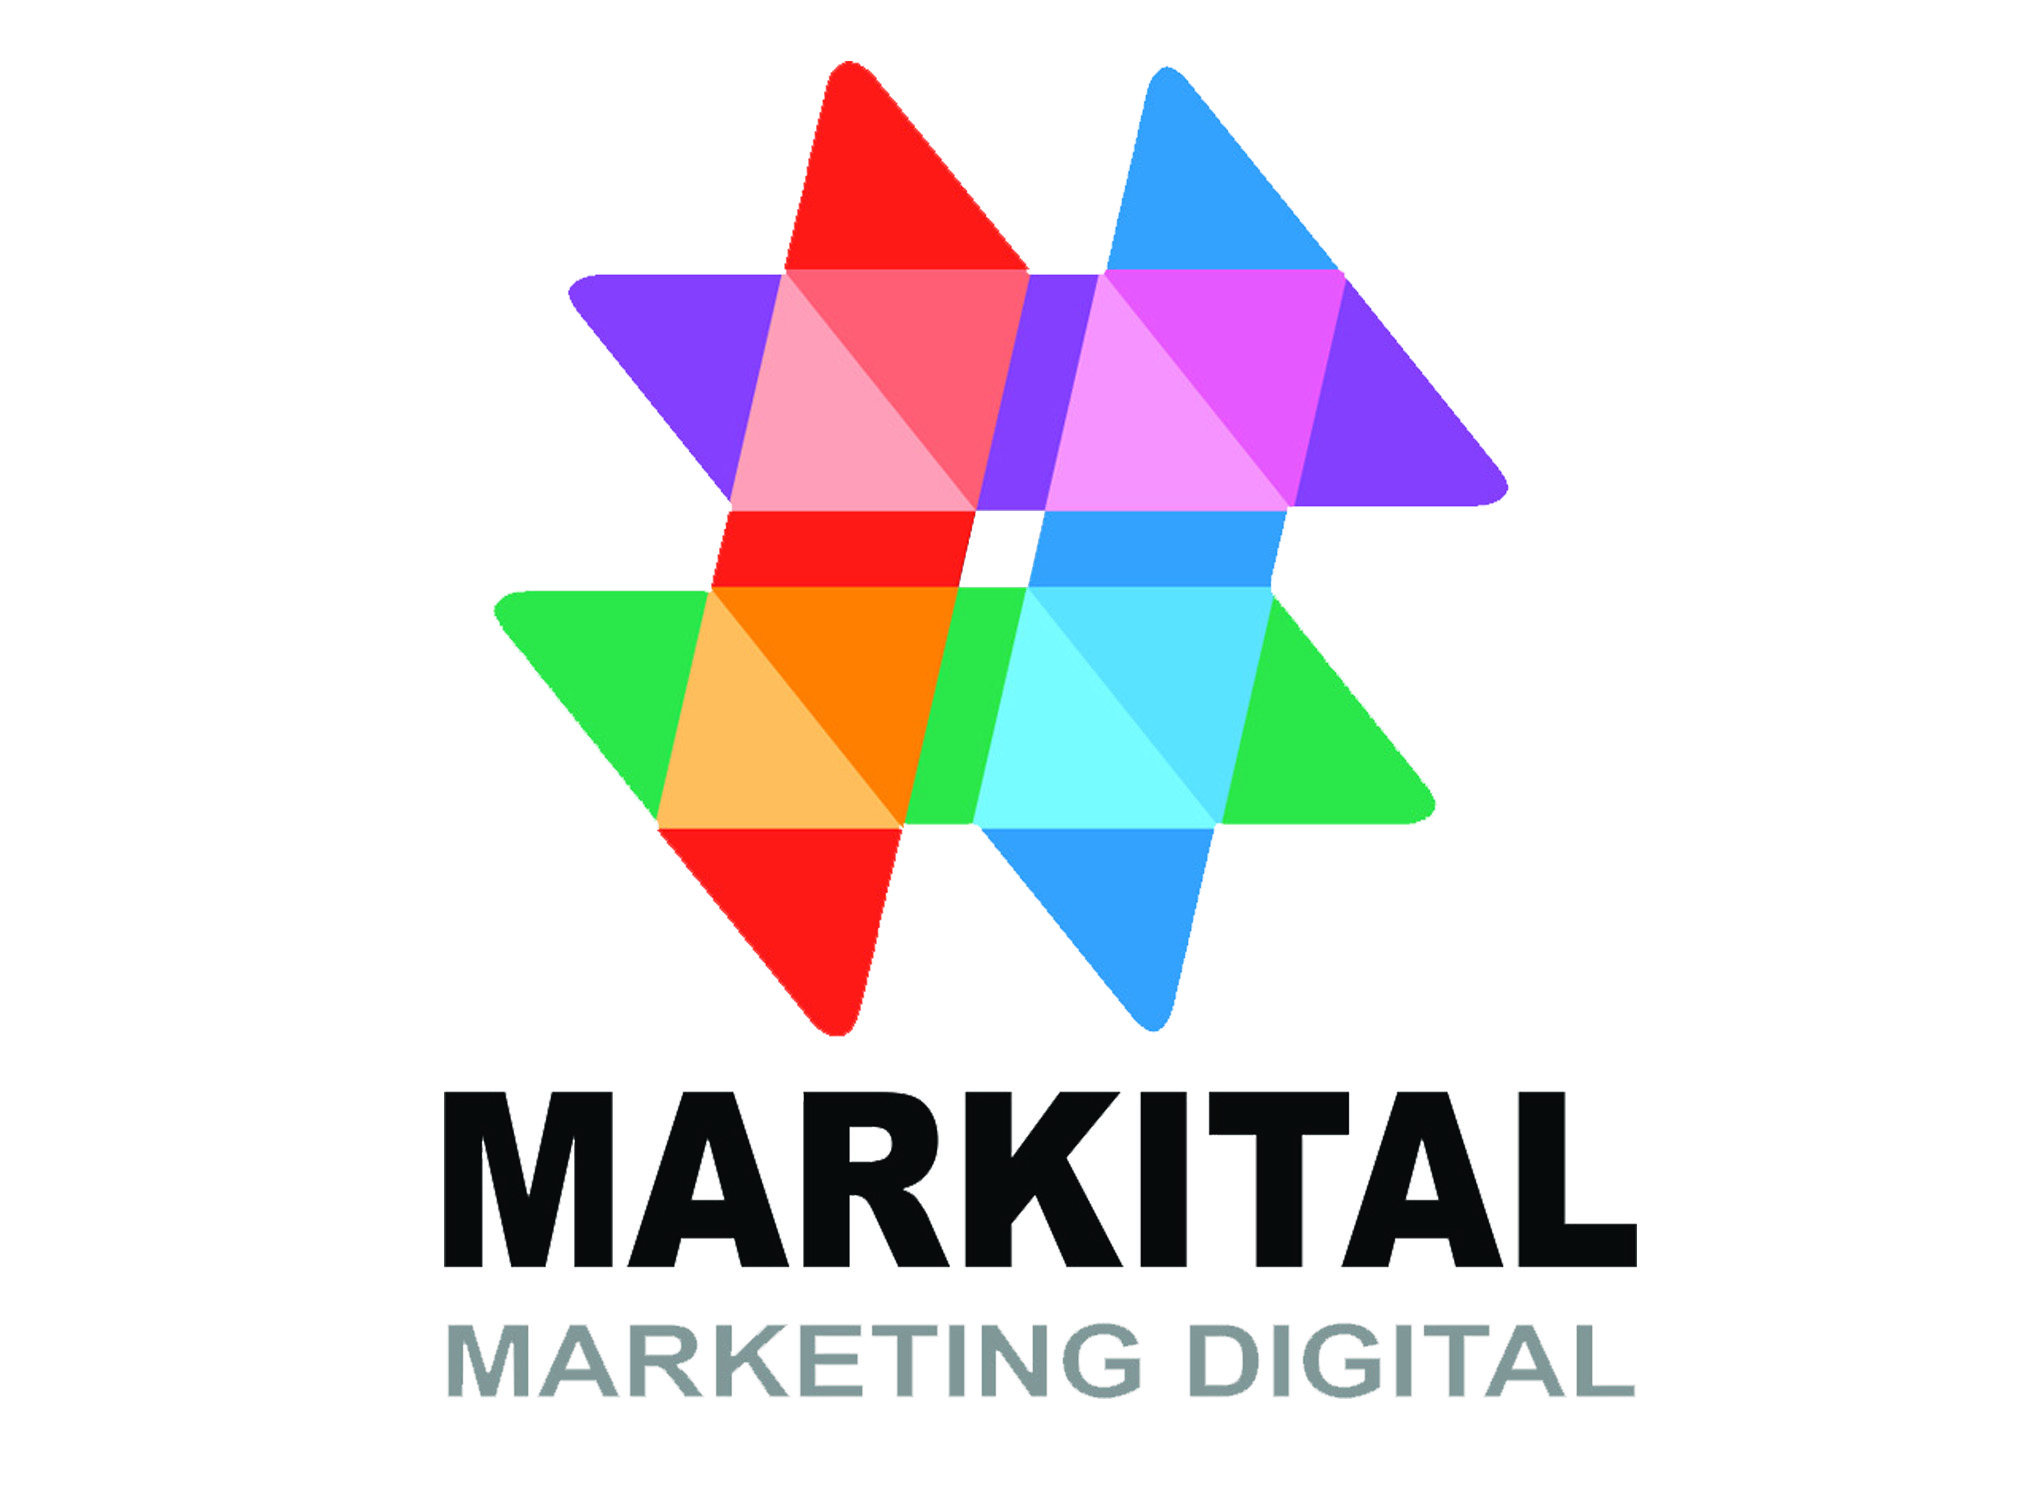 Markital - Marketing Digital